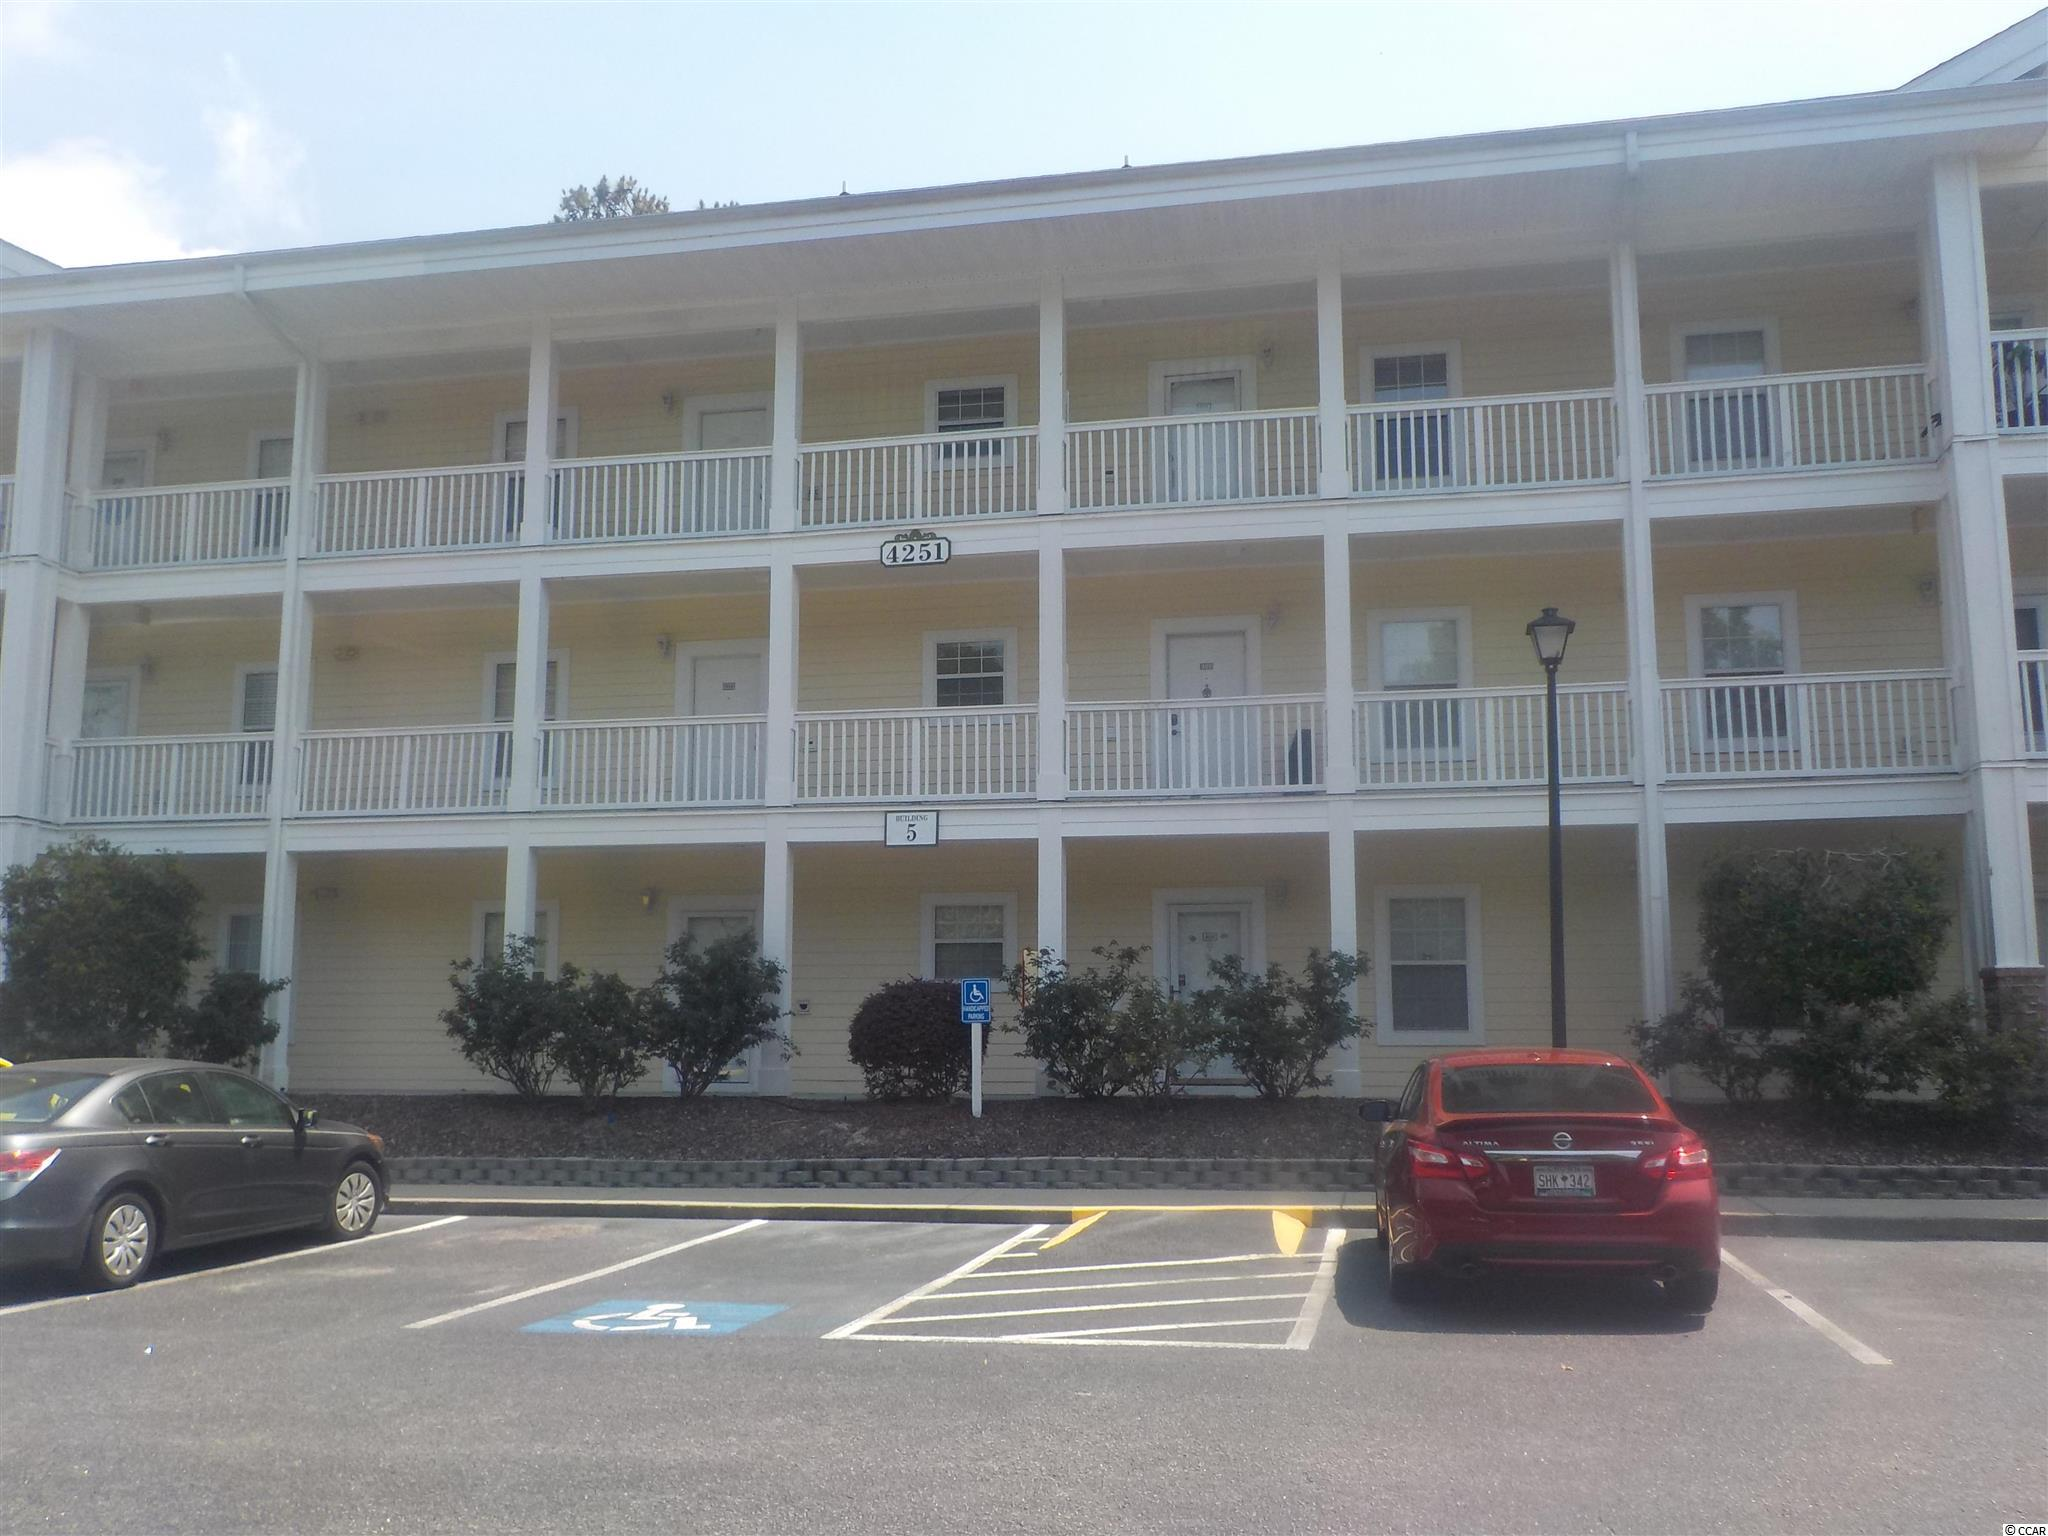 Large one bedroom and bath condo on the third floor. Selling furnished. A must see. Located close to pool and barbecue area. HVAC 2014, new refrigerator 2019, dishwasher 2020. New commode and garbage disposal too.  Subdivision has 3 pools and places to barbecue on sight. Close to beach and shopping. Little River gem!!! Condo has a tenant until Aug 31, 2021.